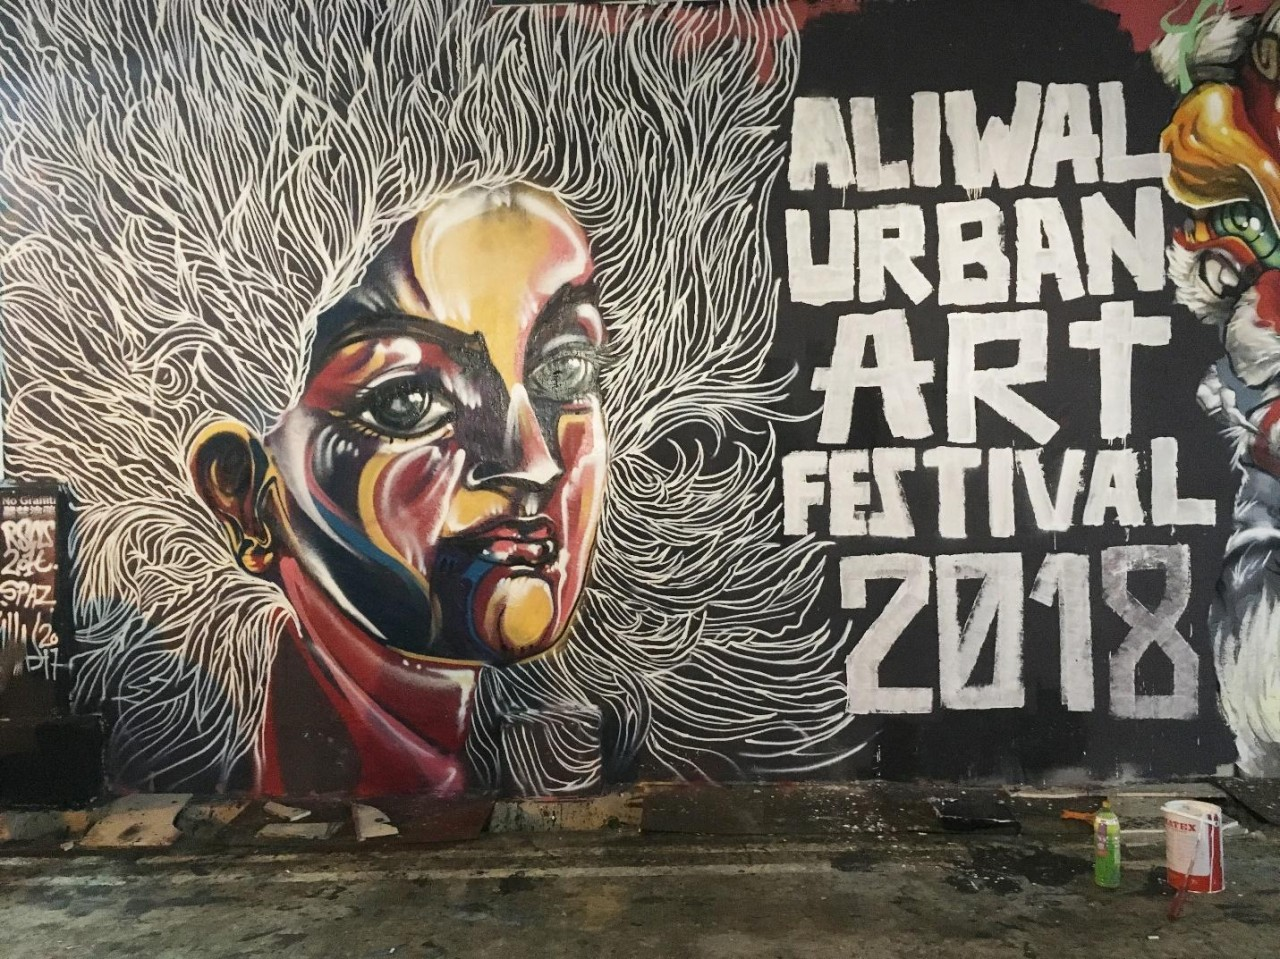 Singapore Art Week - aliwal arts festival